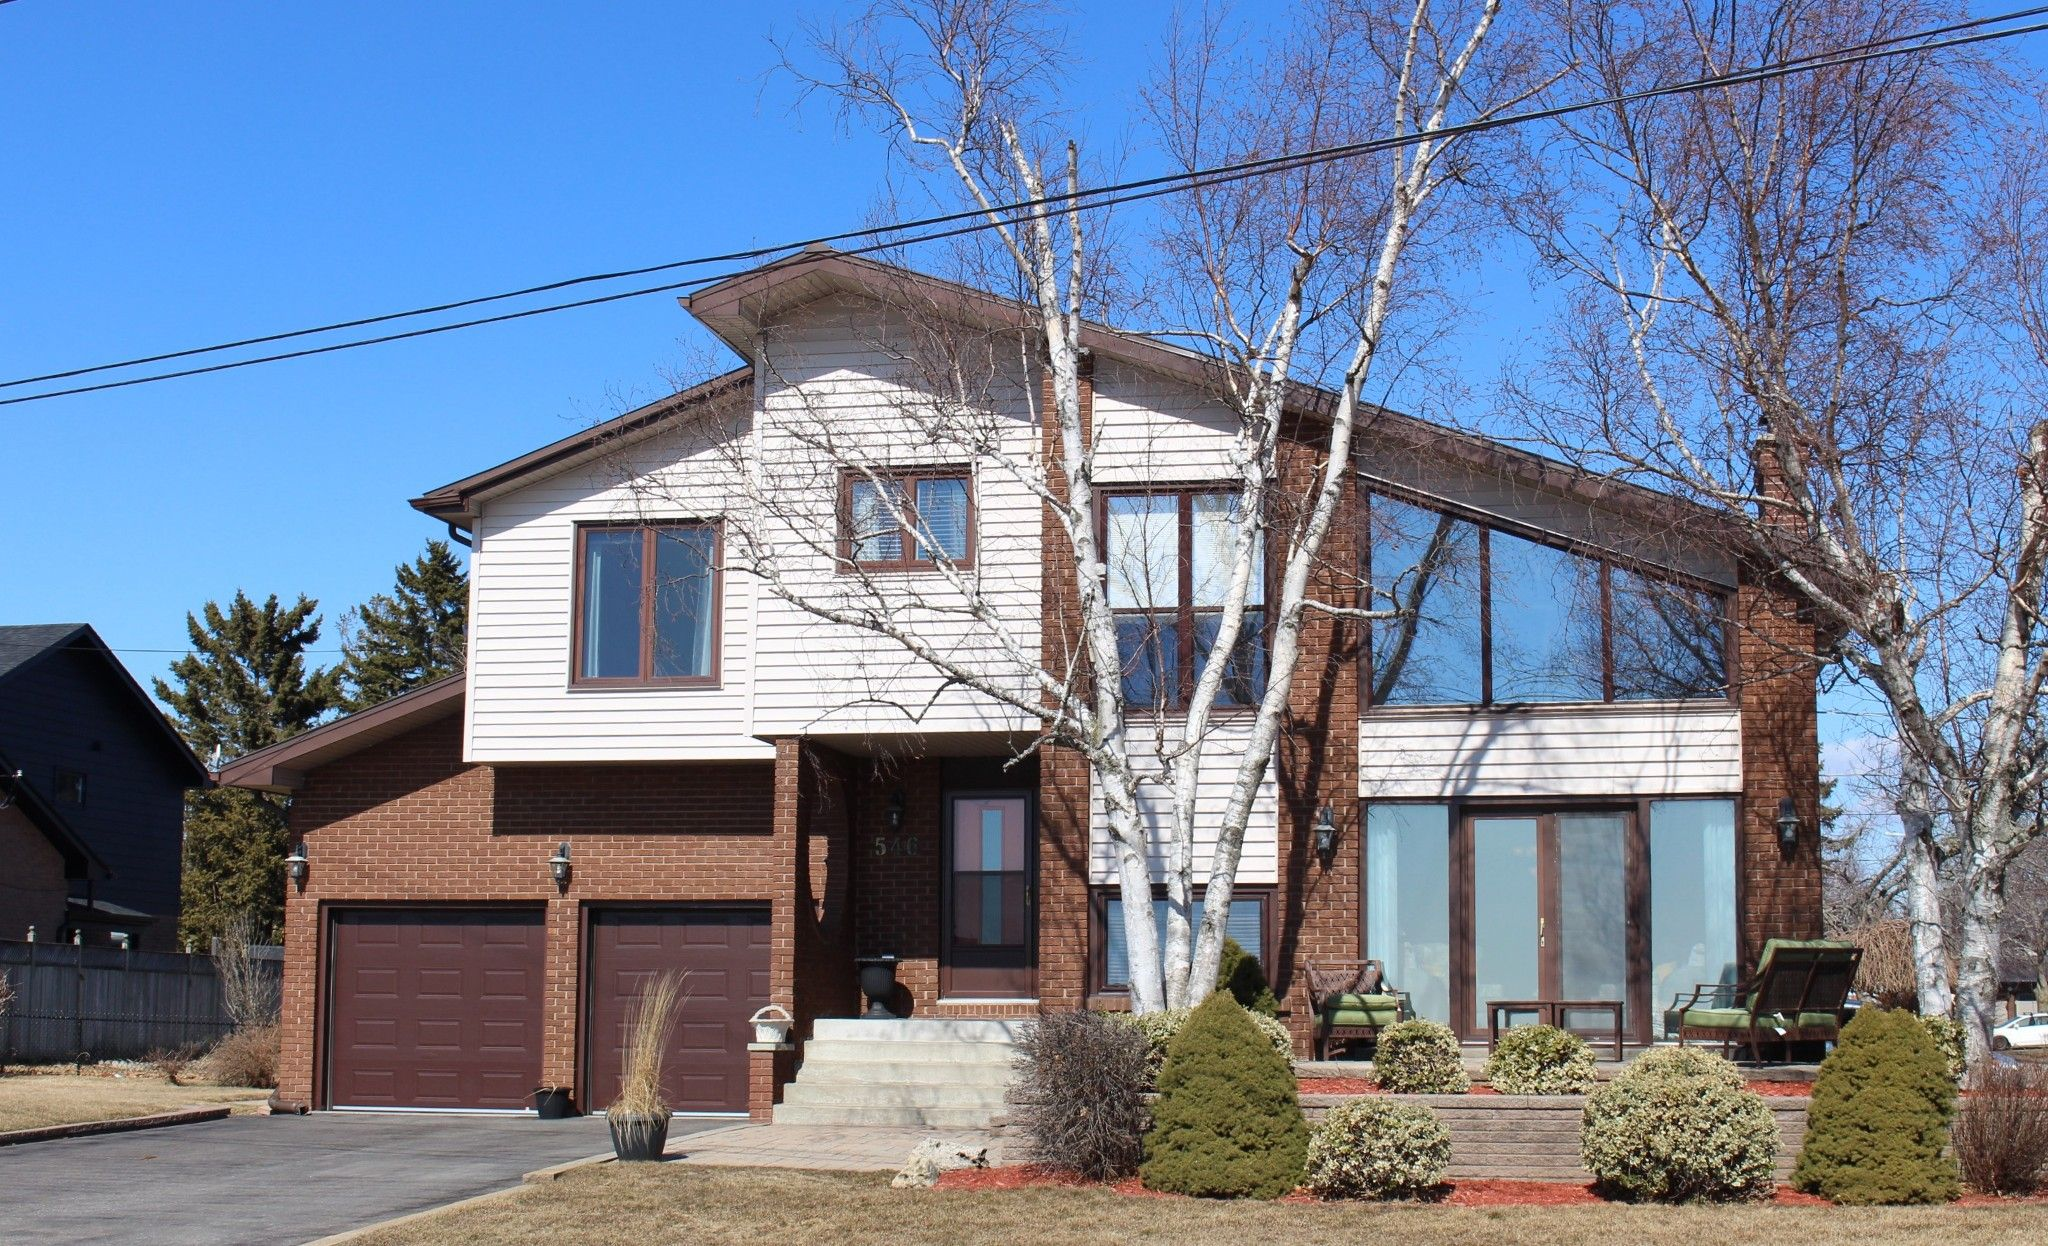 Main Photo: 546 Monk Street in Cobourg: House for sale : MLS®# X5175833